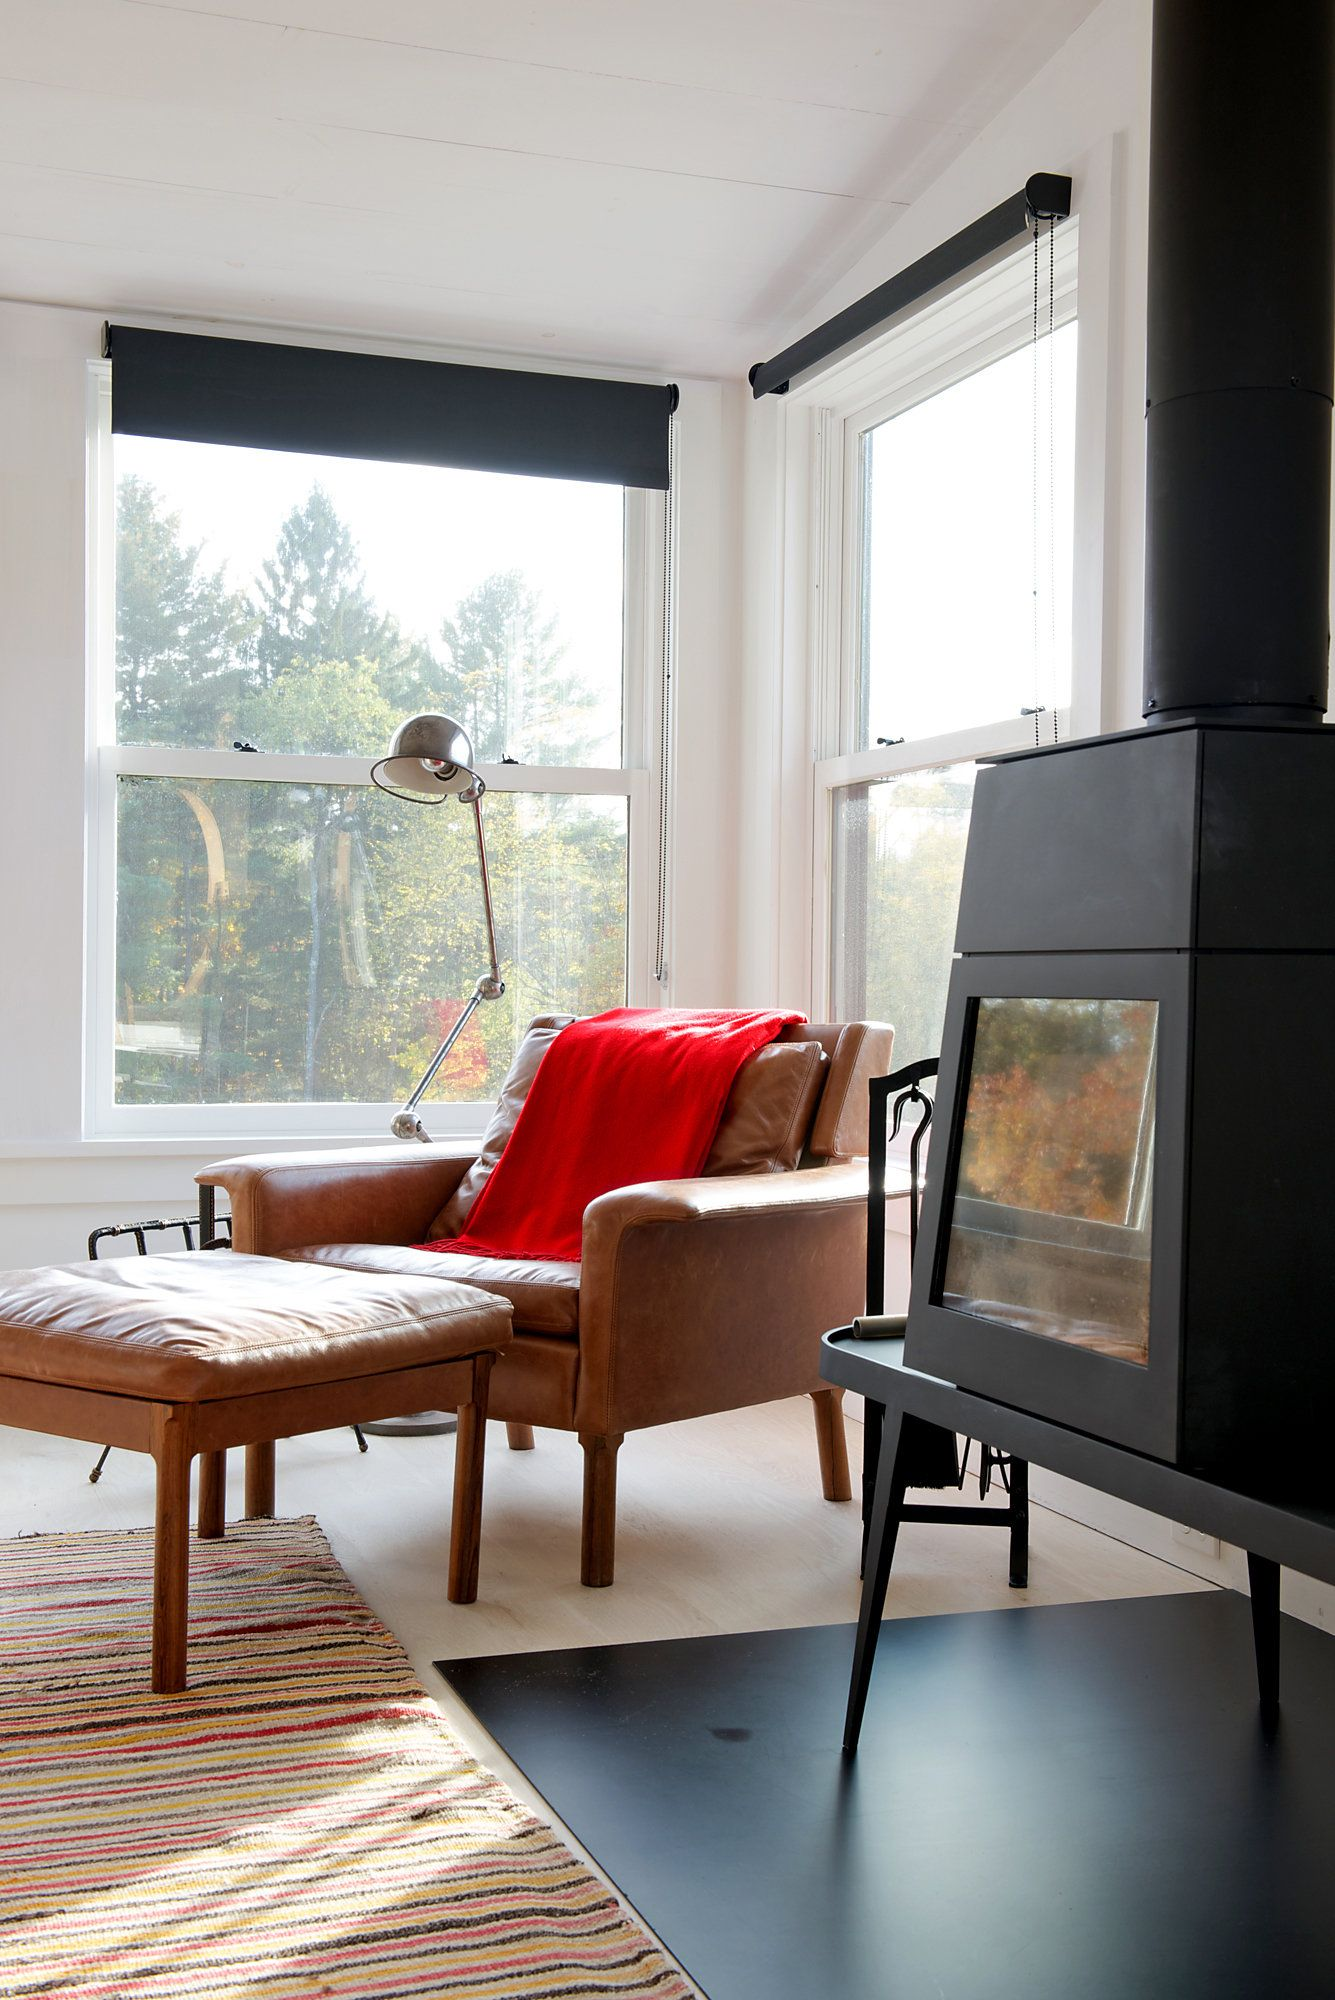 A Midcentury Bungalow Is Transformed With Glass Walls, Kilims and ...